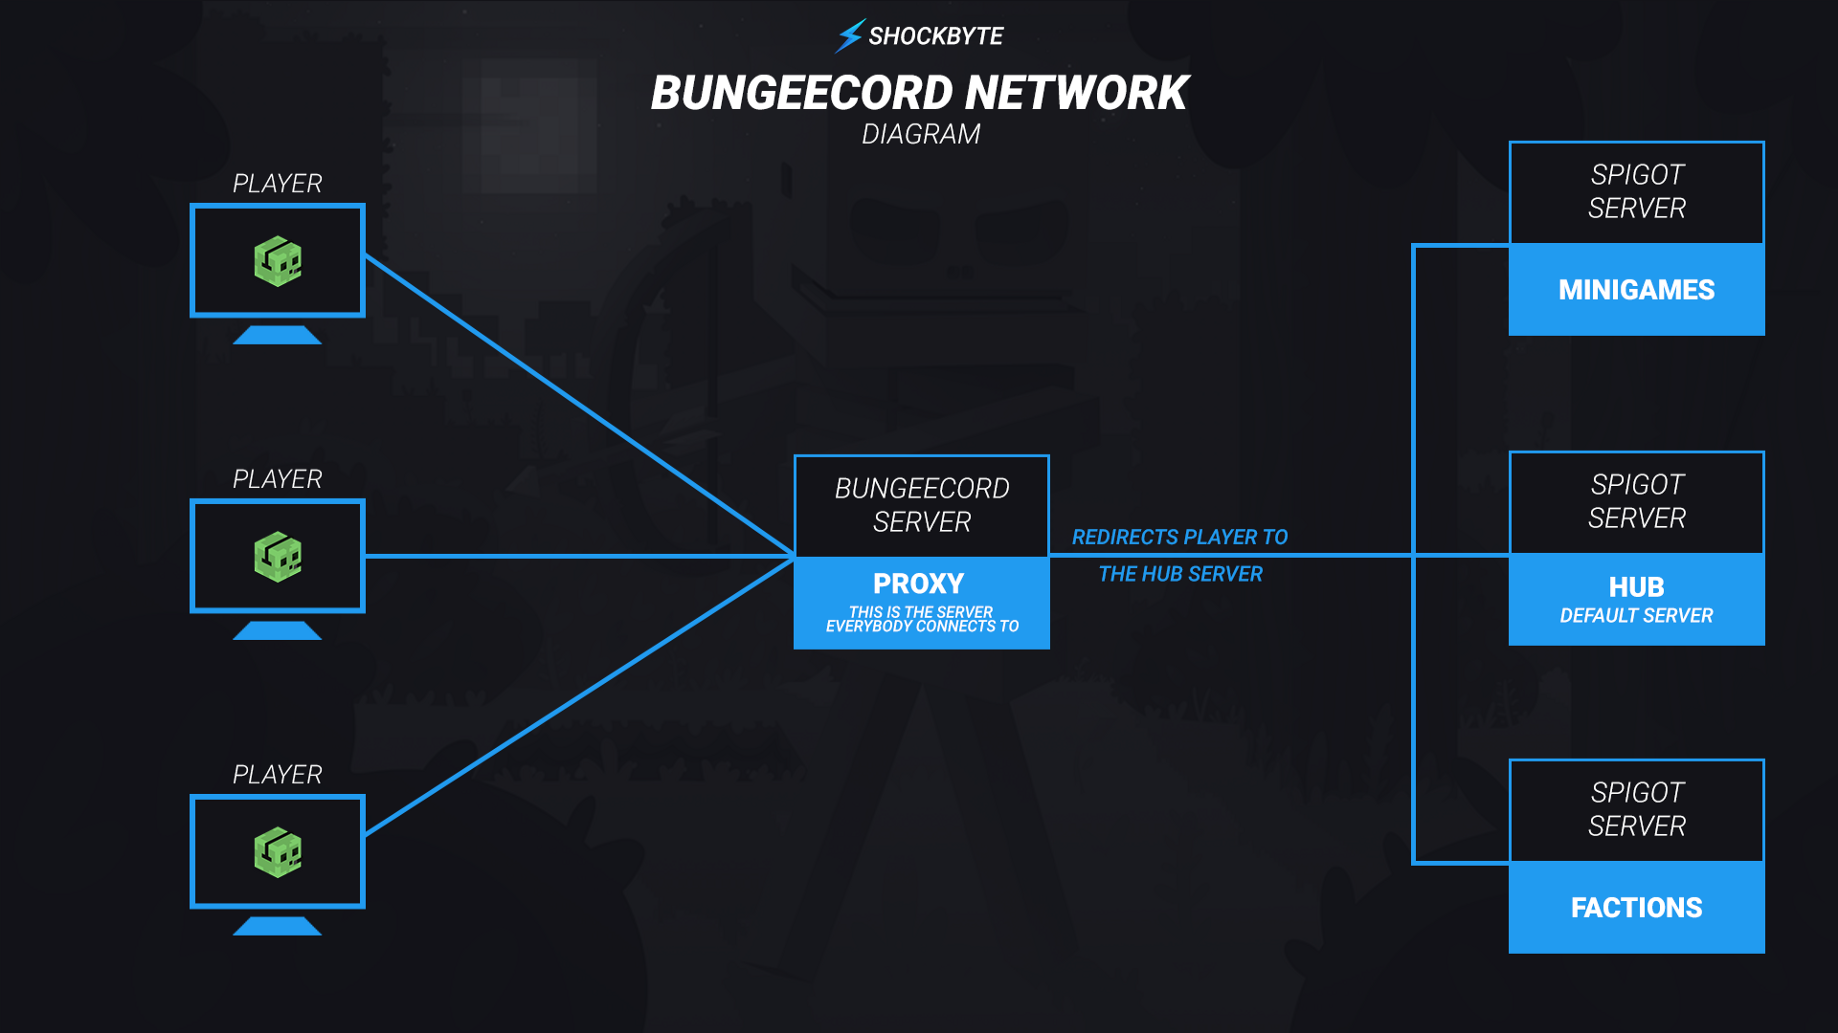 How does BungeeCord work? - Shockbyte - Medium